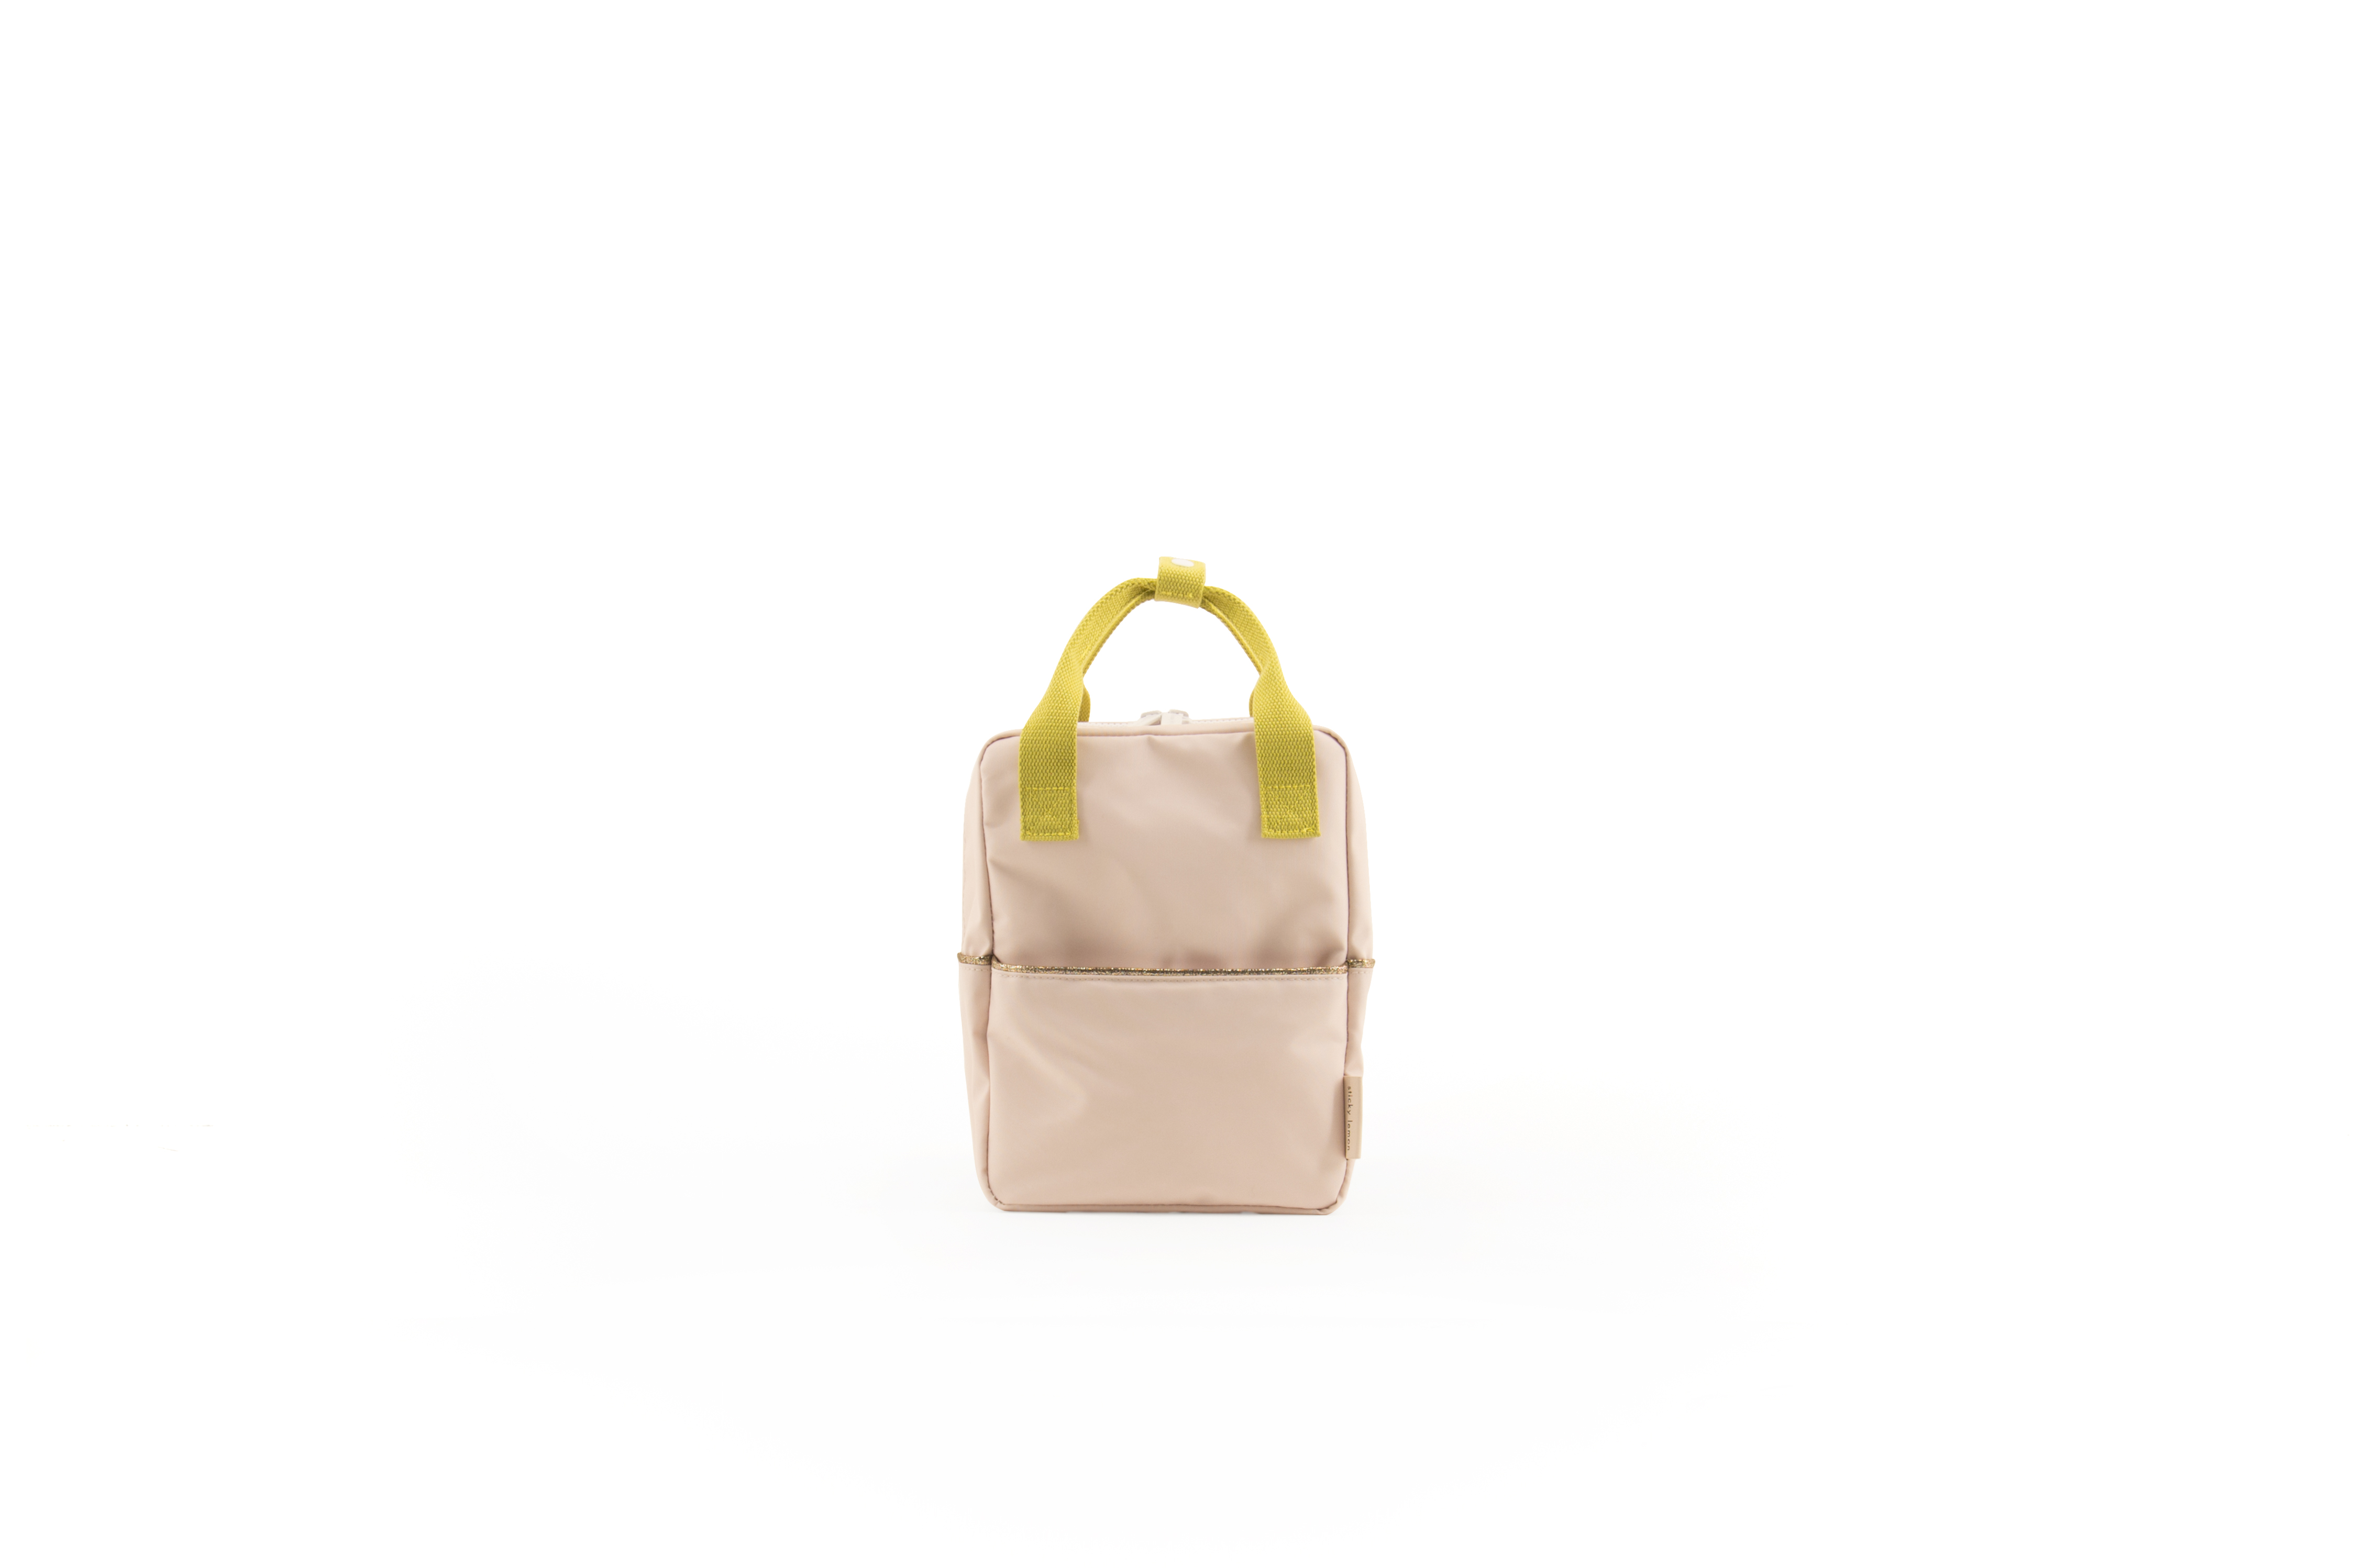 Sticky Lemon Pink - Backpack Small - Nude Pink - Accessories